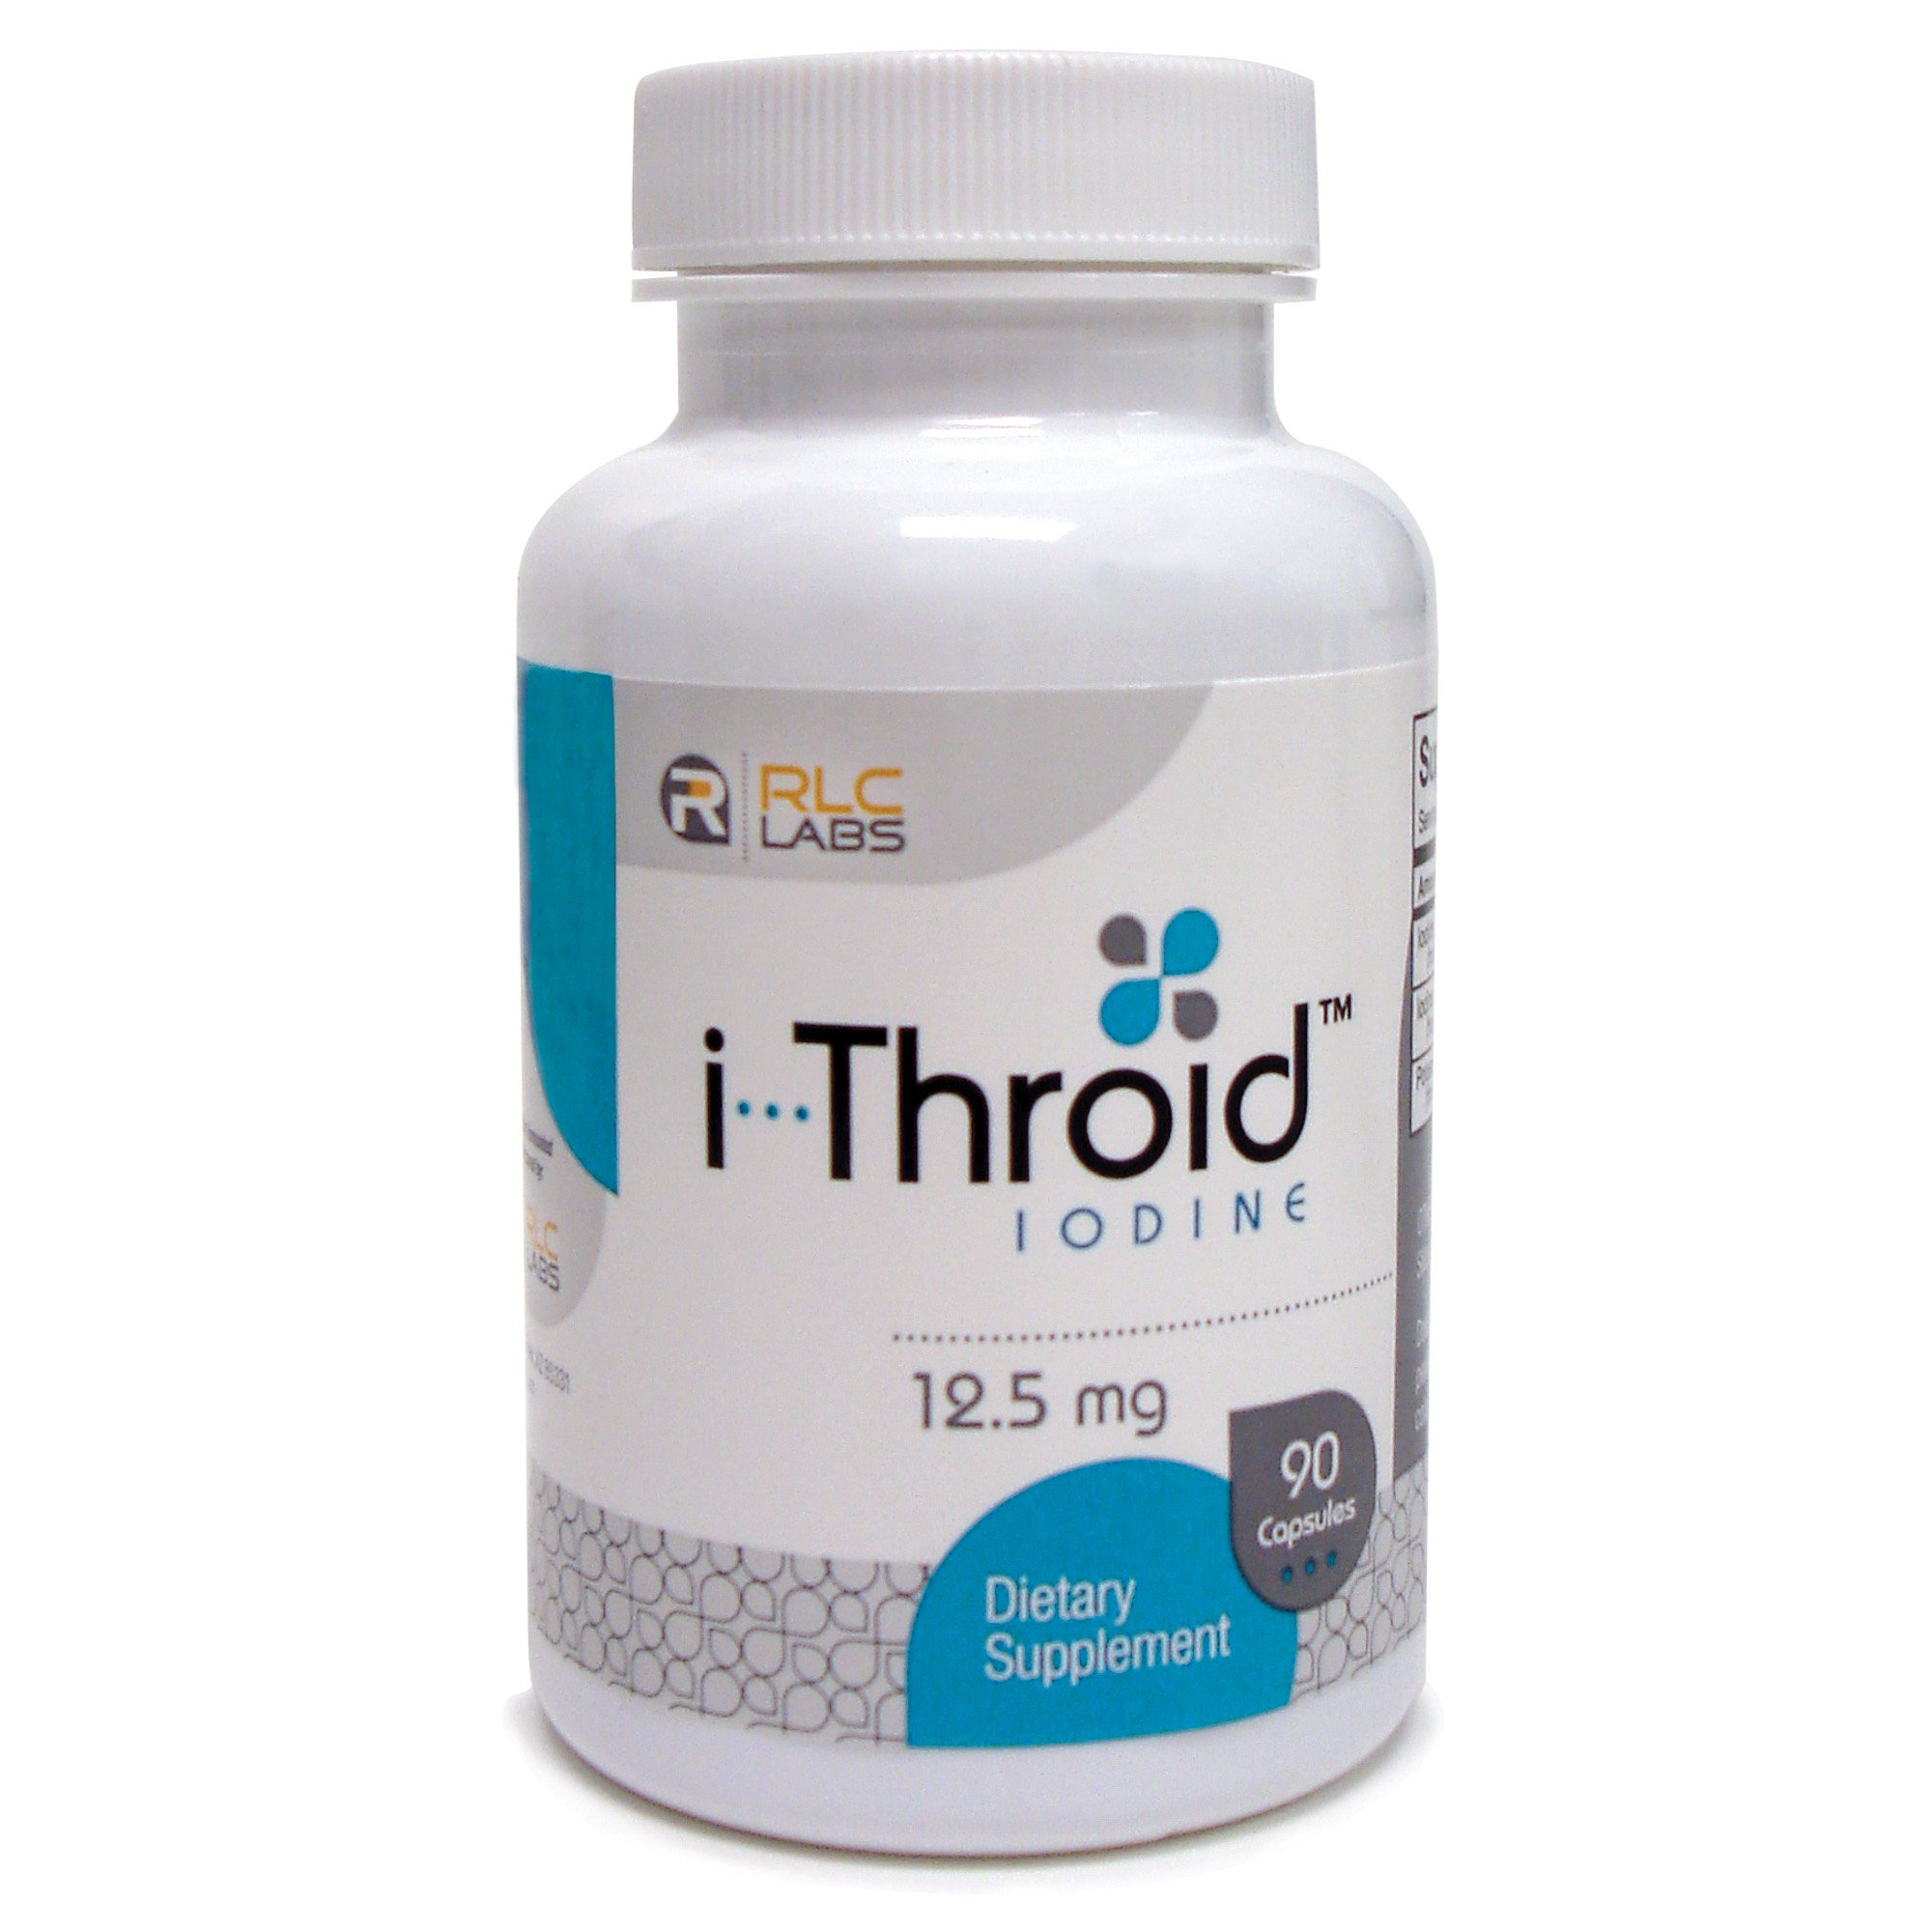 RLC Labs - iThroid 12.5mg, 90 Count